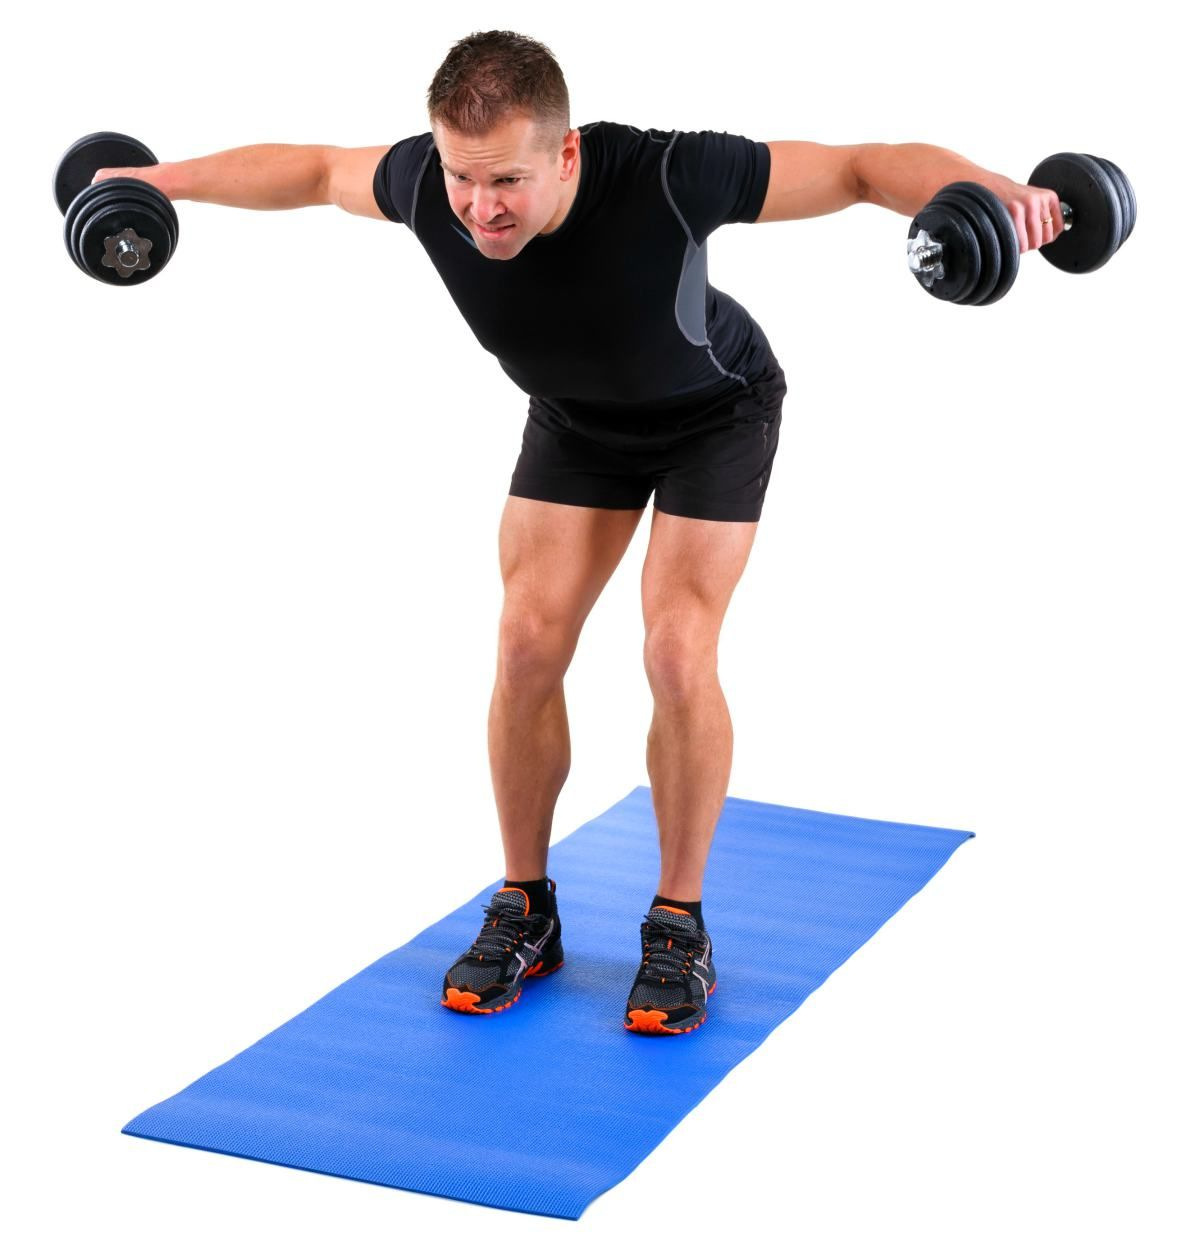 Rotator Cuff Exercises And Stretches For Healing Rotator Cuff Exercises Rotator Cuff Exercise